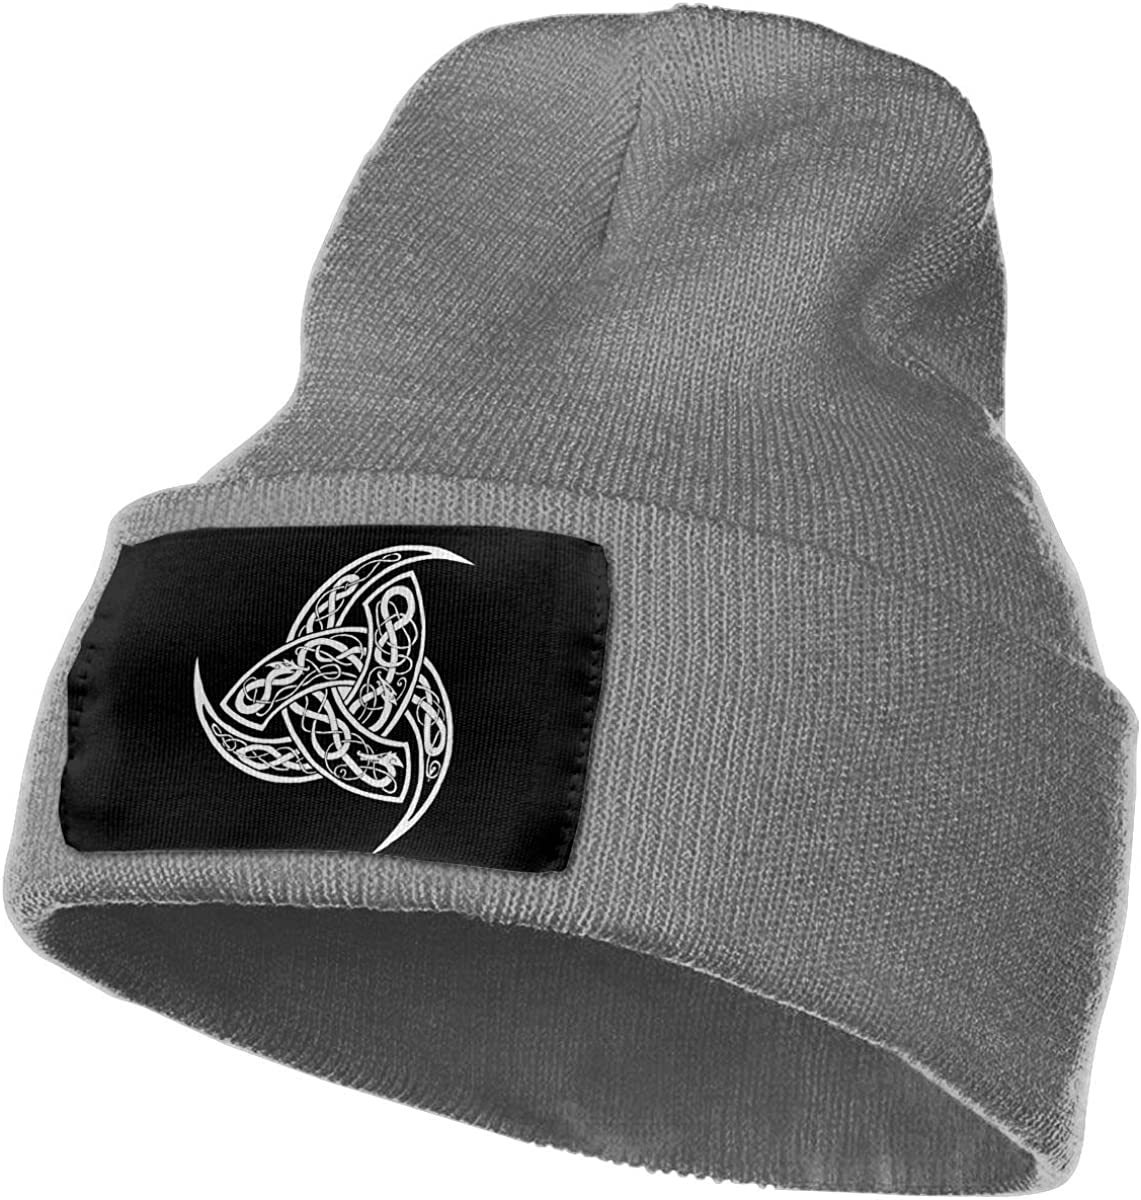 FORDSAN CP Triskele Mens Beanie Cap Skull Cap Winter Warm Knitting Hats.